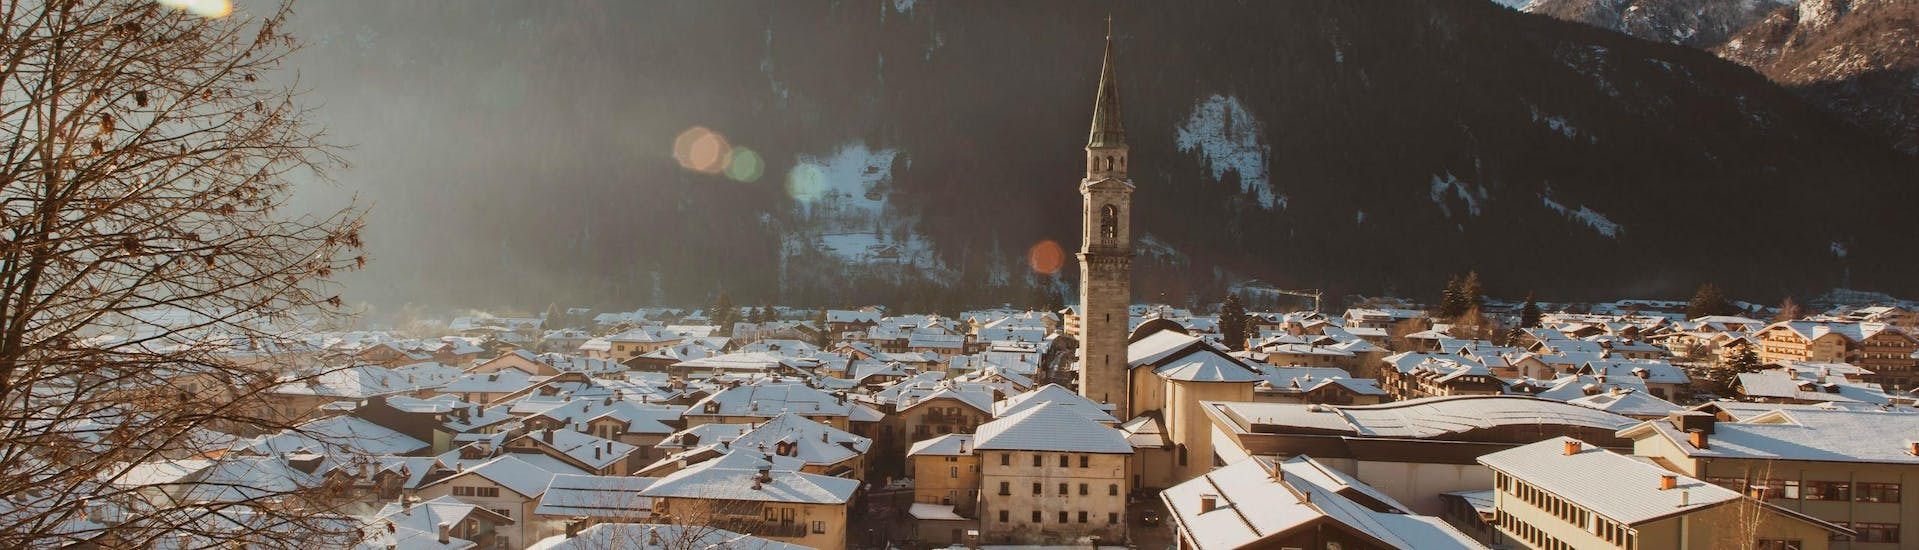 An image of the snow-capped roofs of the Italian village of Pinzolo, a popular destination for people to book ski lessons with one of the local ski schools.